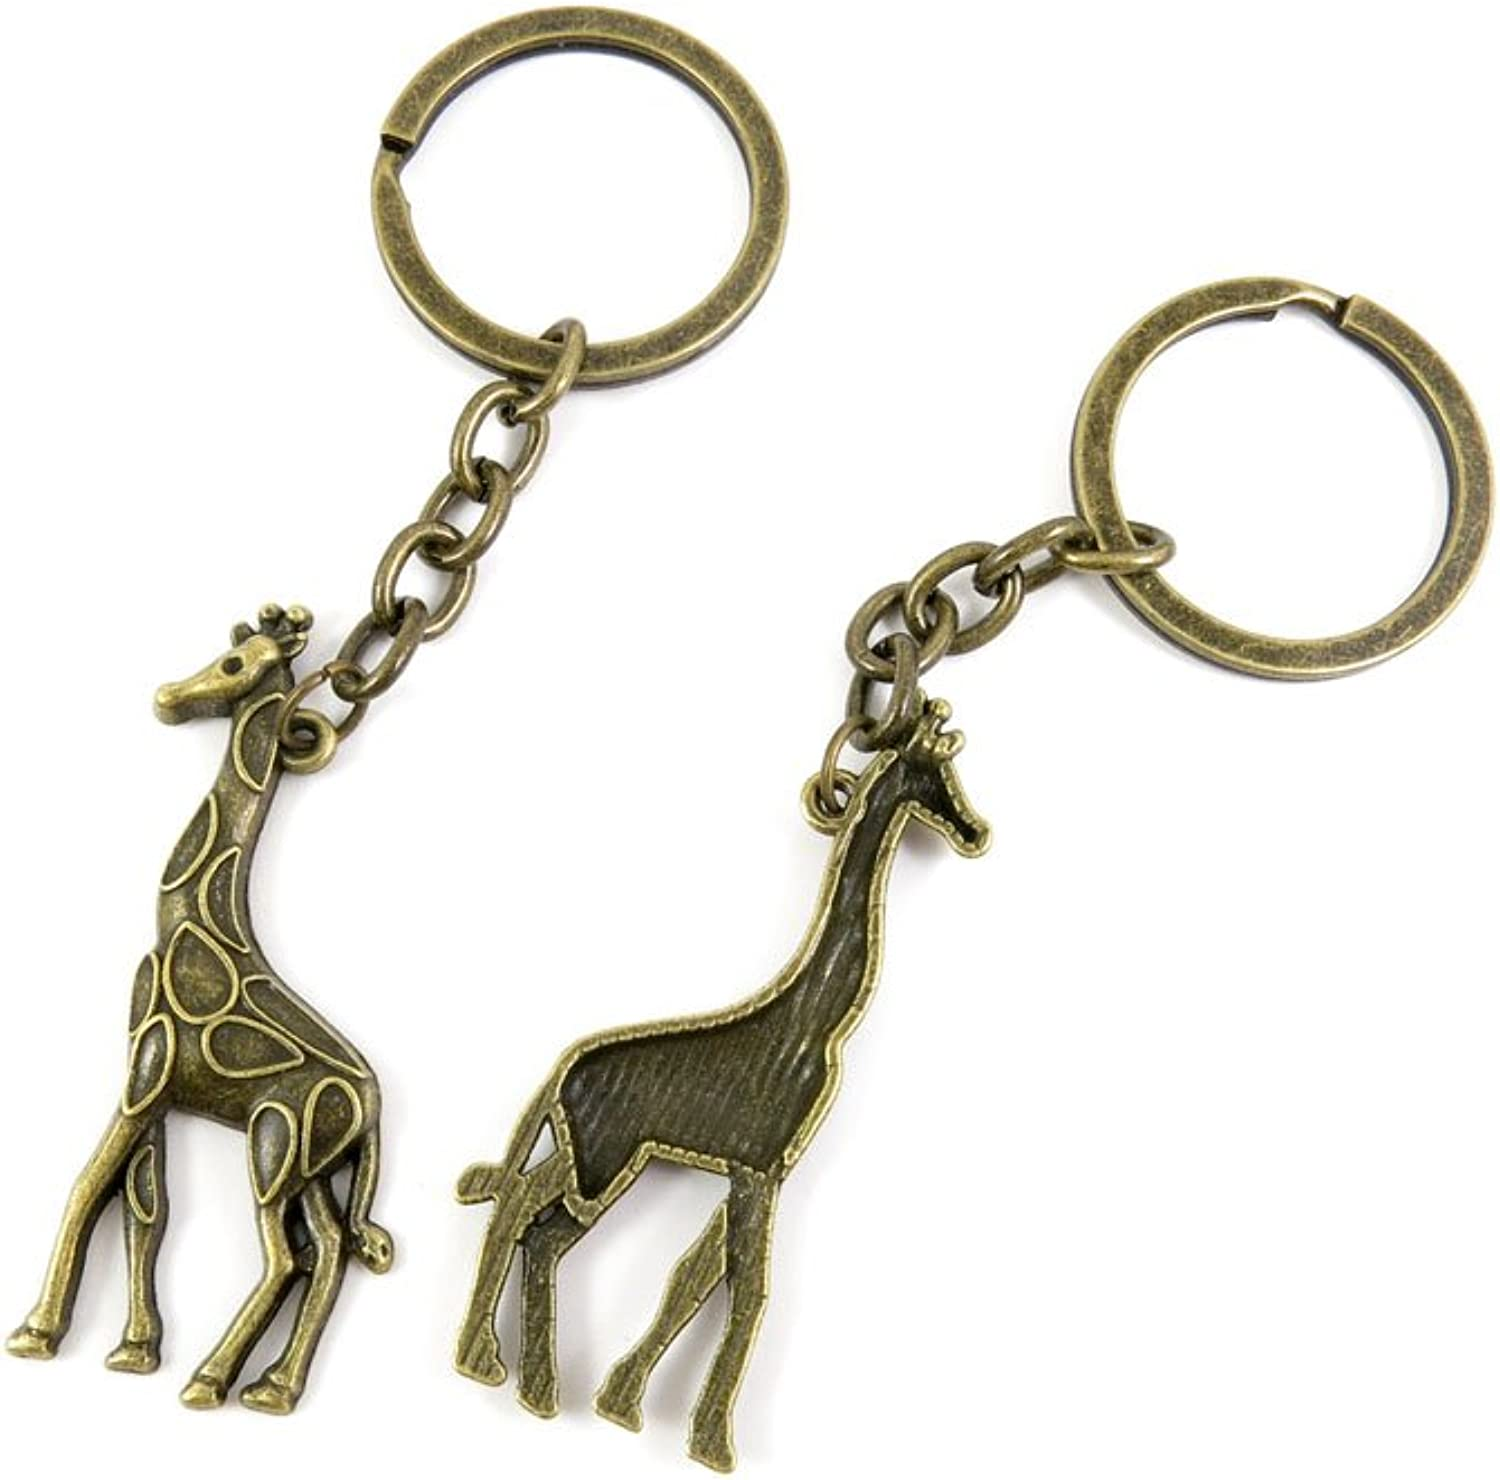 100 PCS Keyrings Keychains Key Ring Chains Tags Jewelry Findings Clasps Buckles Supplies Y4CM1 Giraffe